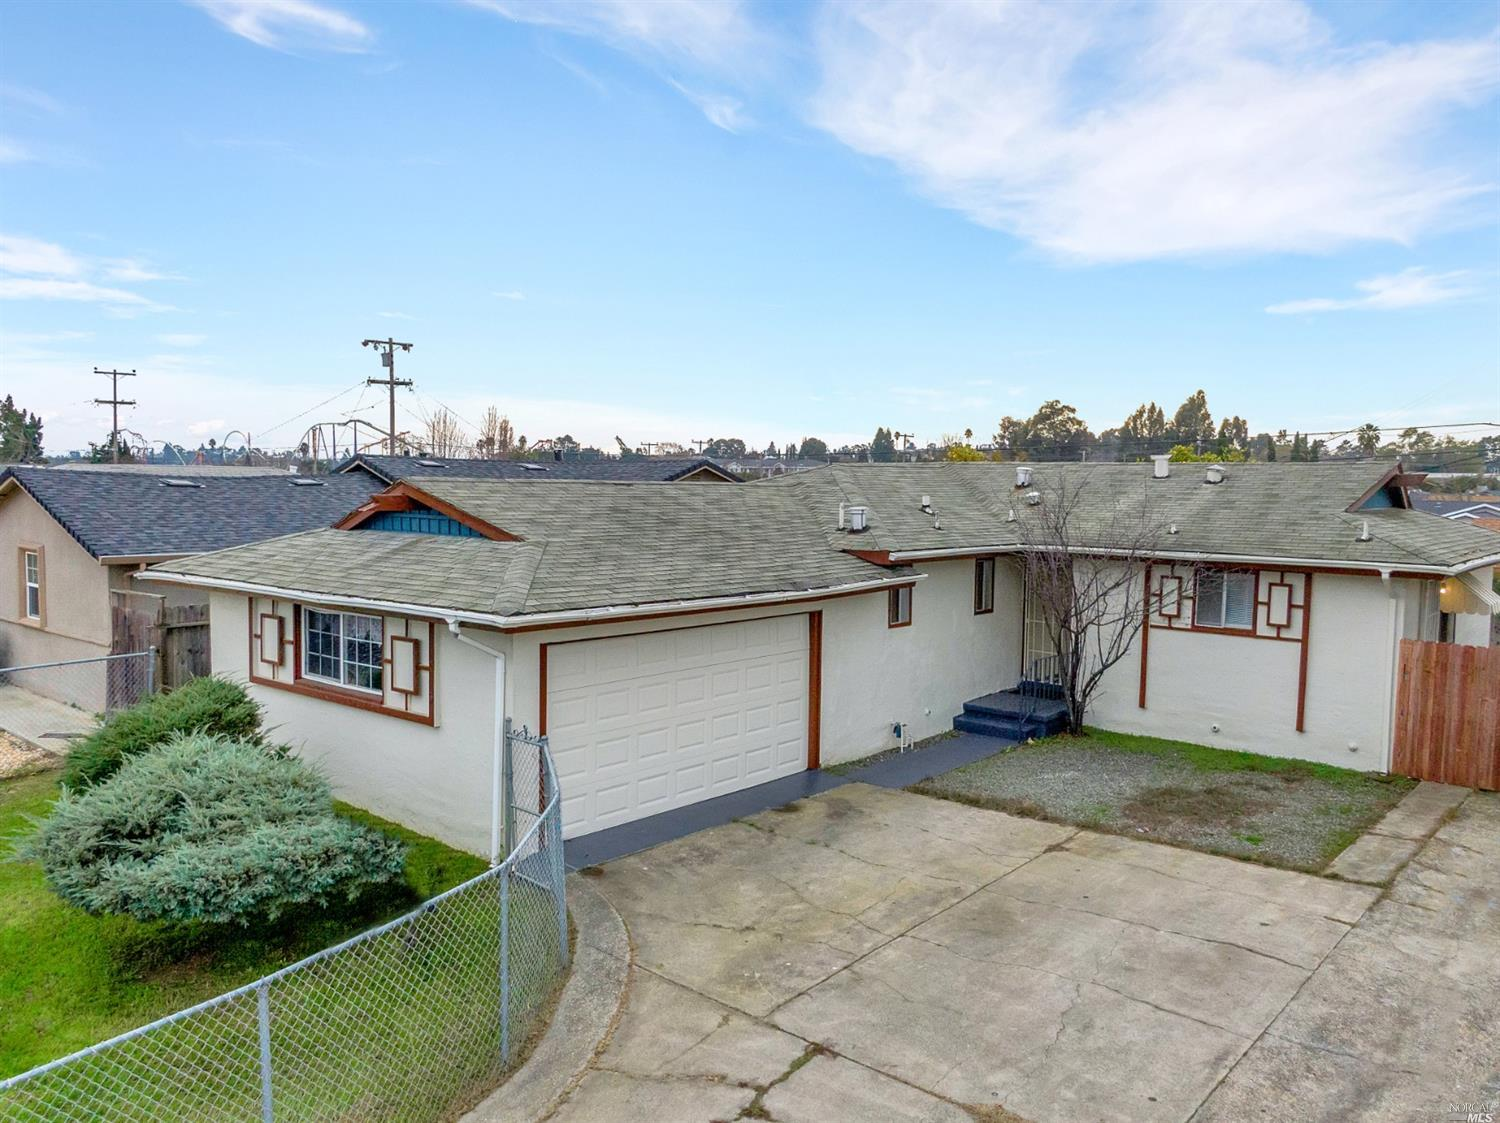 Ready for new owners, this 3 bed, 2 bath home has been freshly updated with new flooring and windows